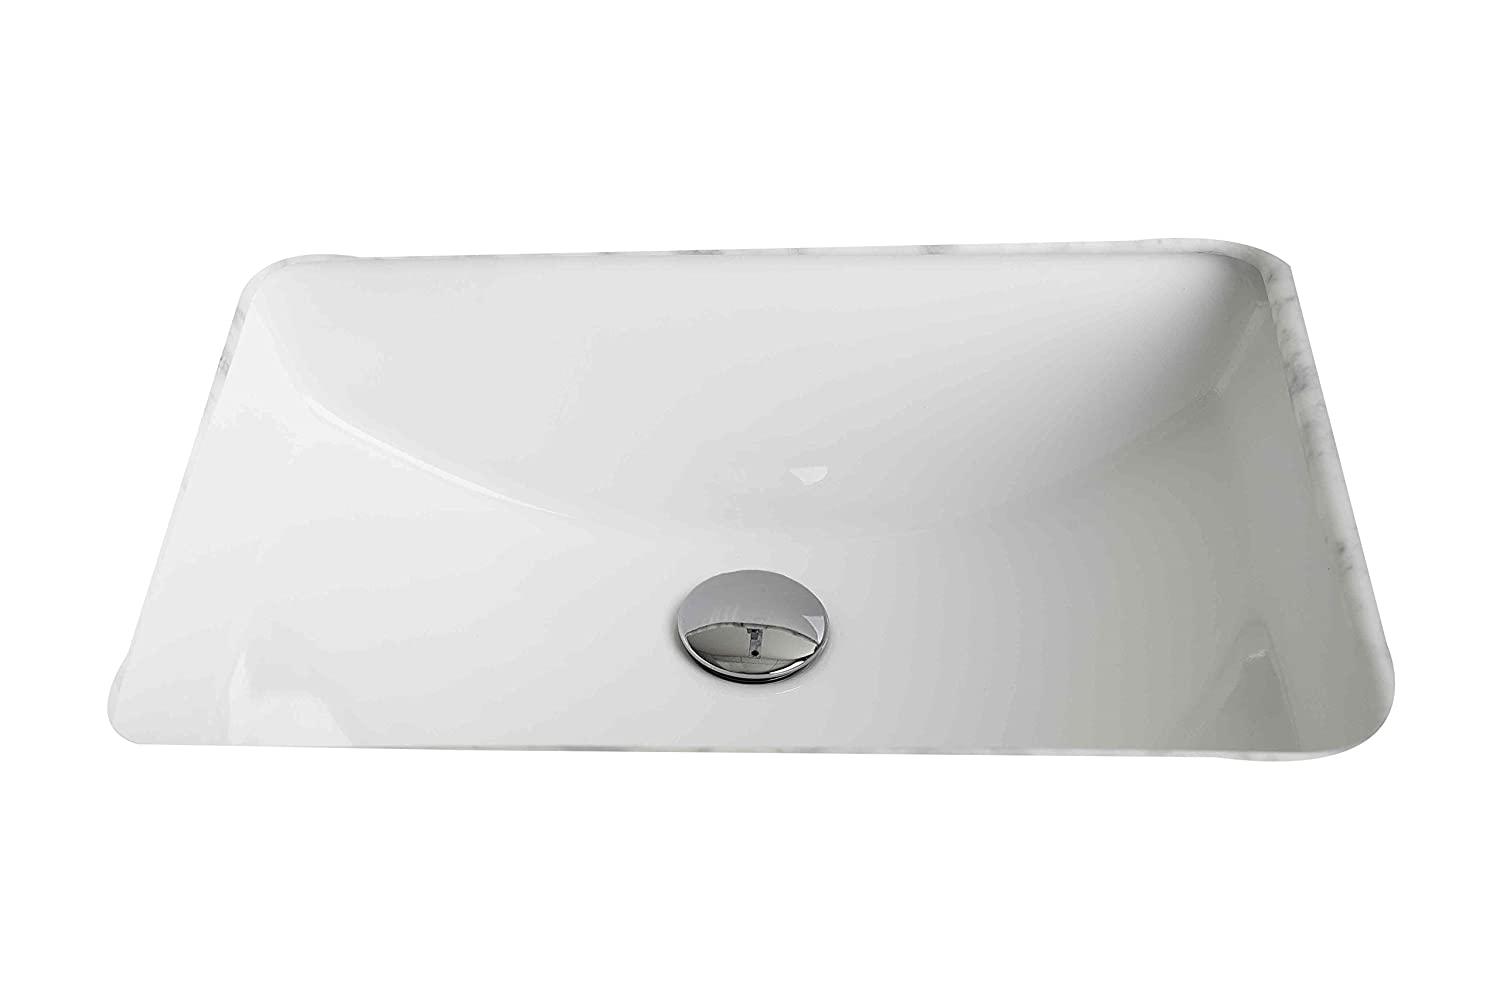 American Imaginations AI-13-176 Rectangle Undermount Sink, 20.75-in. W x 14.35-in. D, White